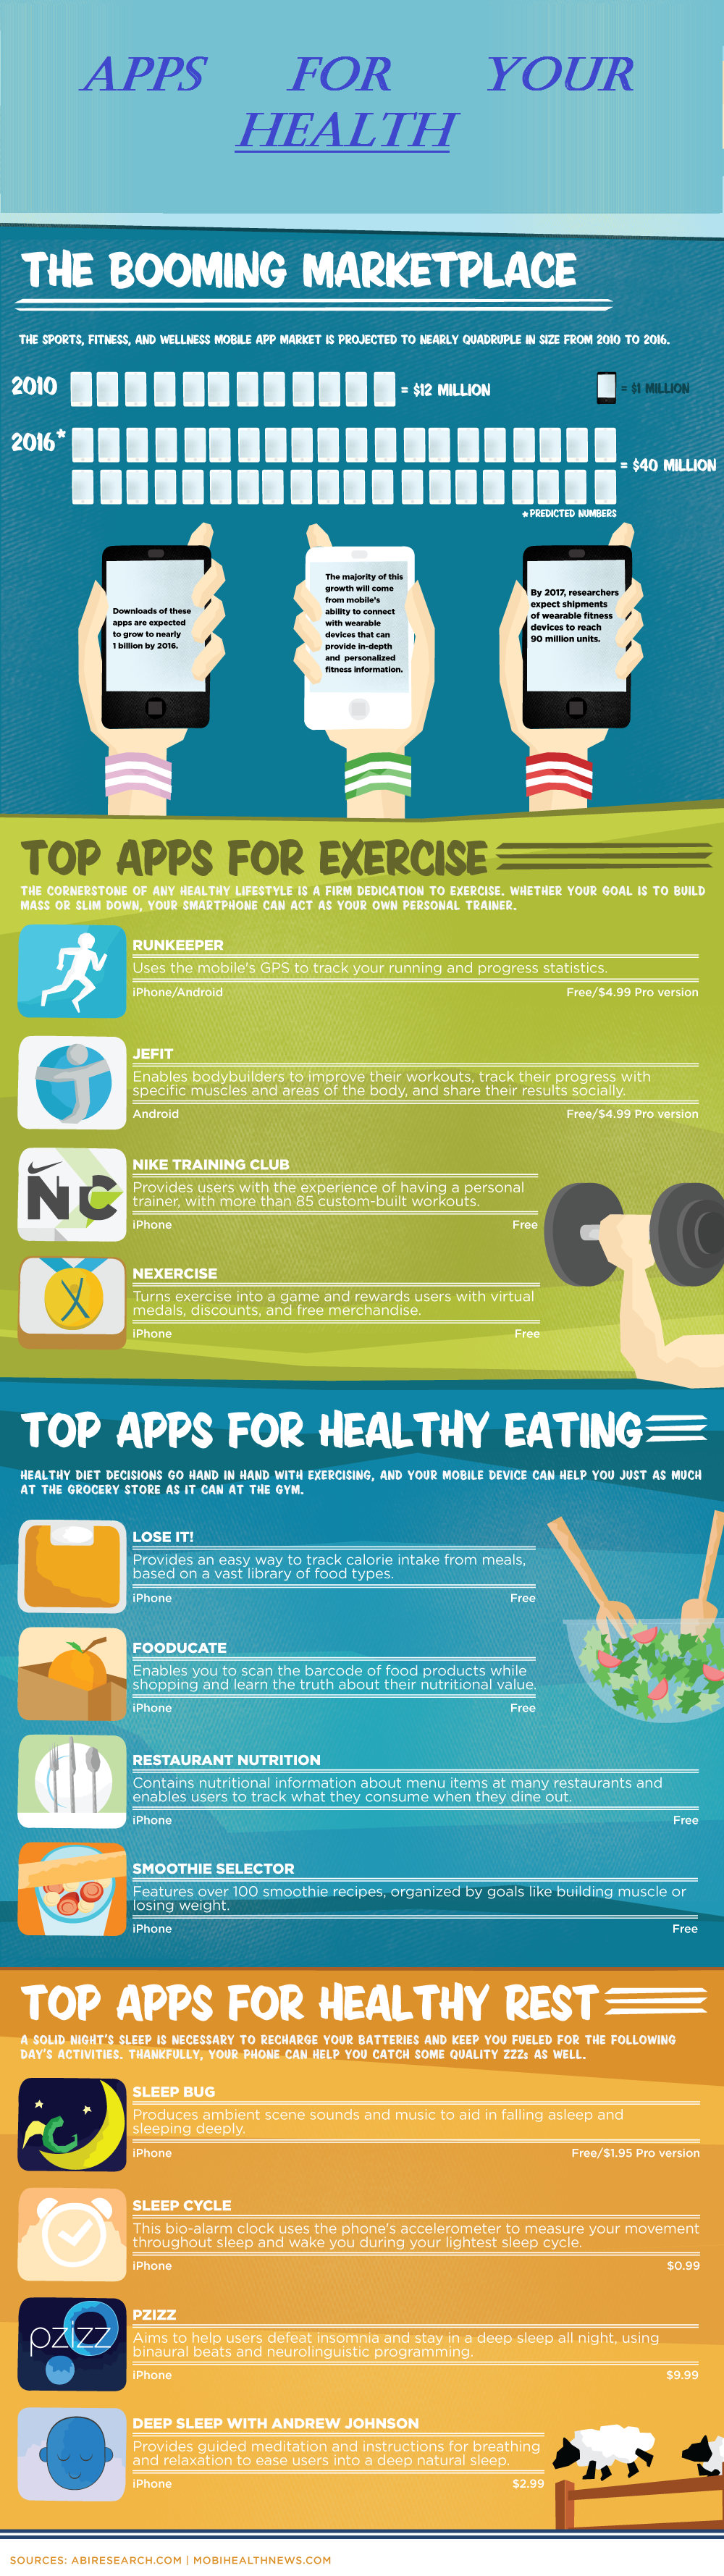 Apps for your Health- An infographic